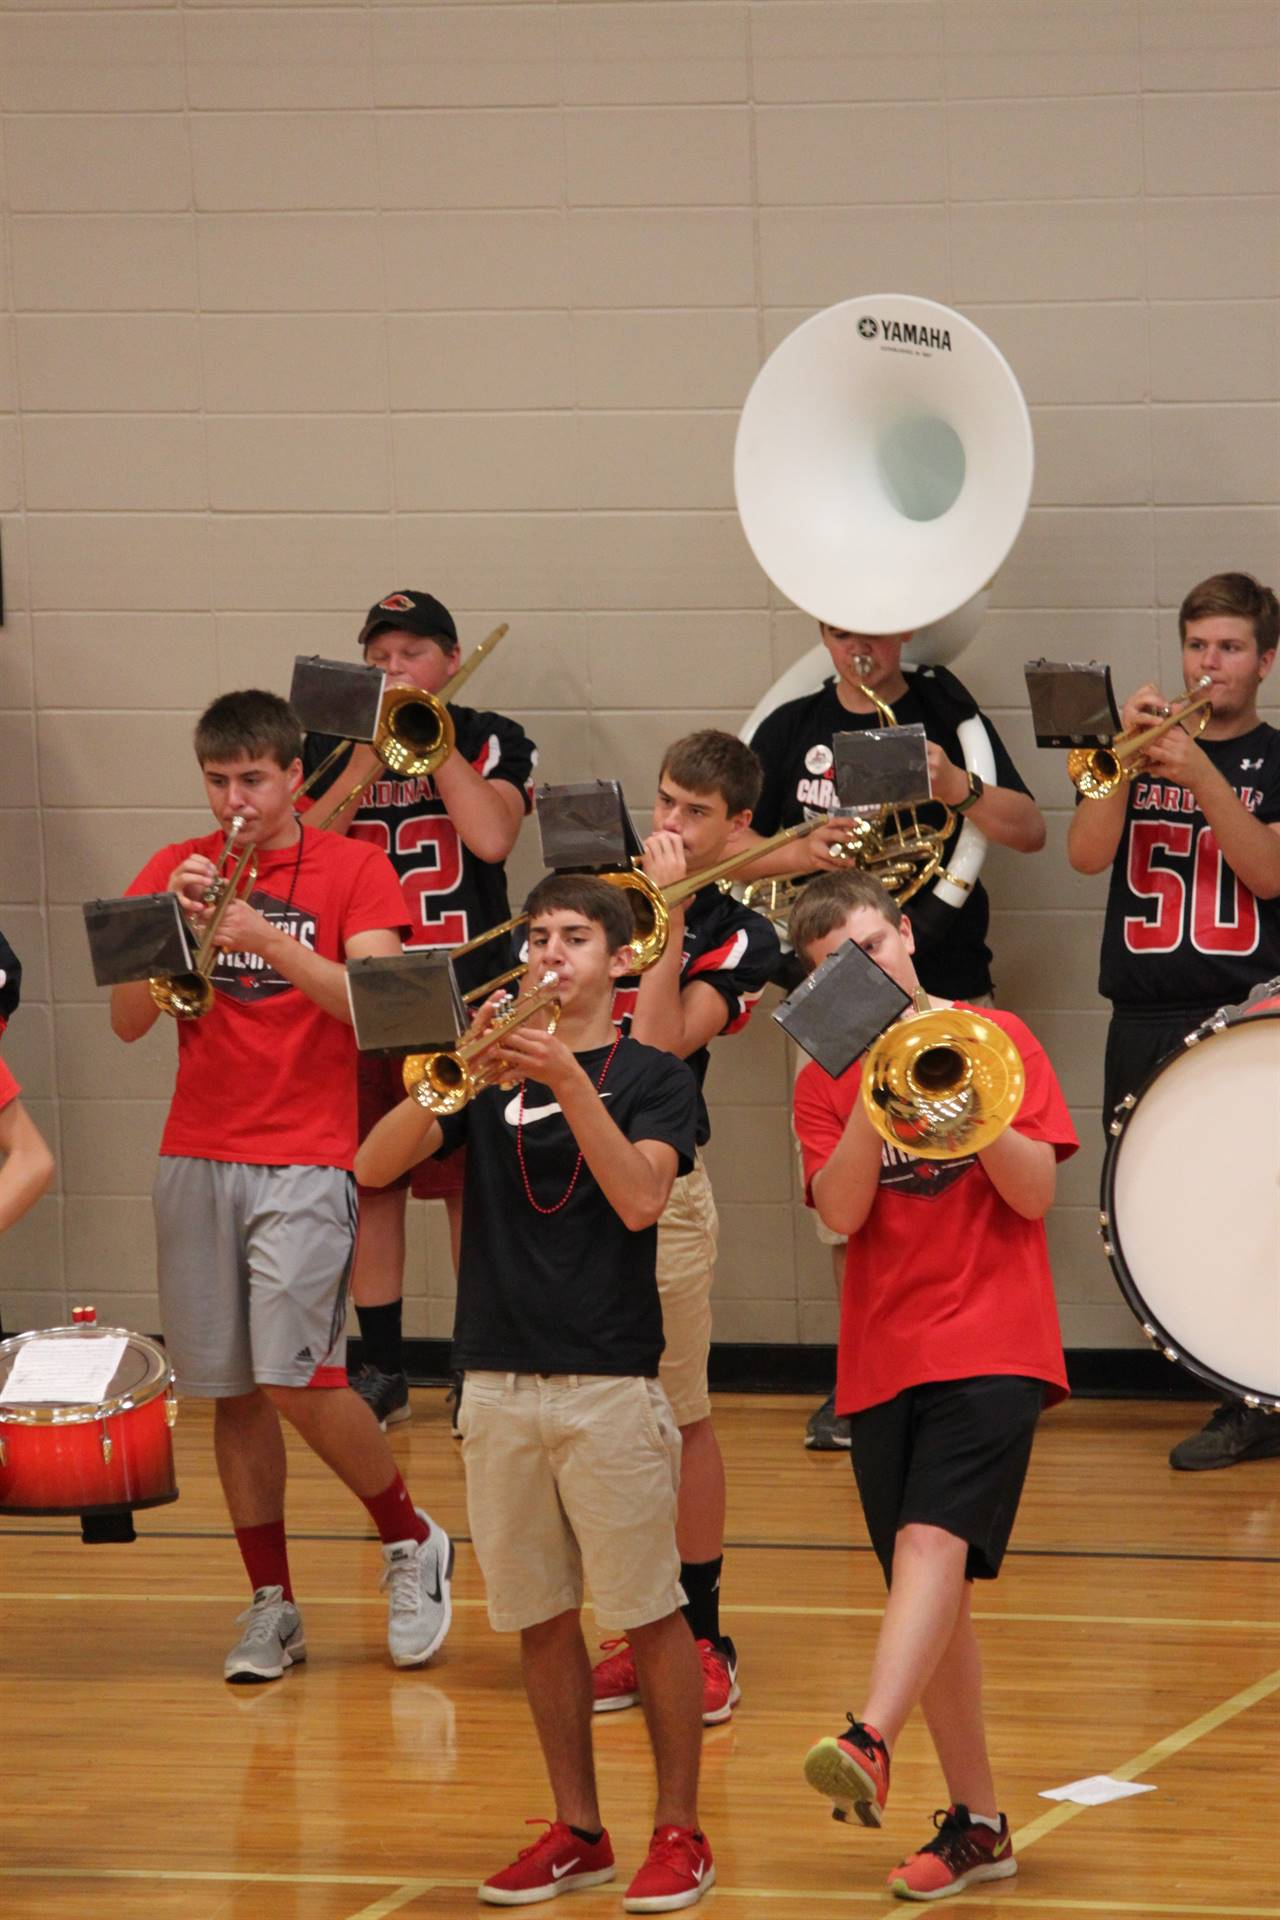 Students in a gym playing band instruments